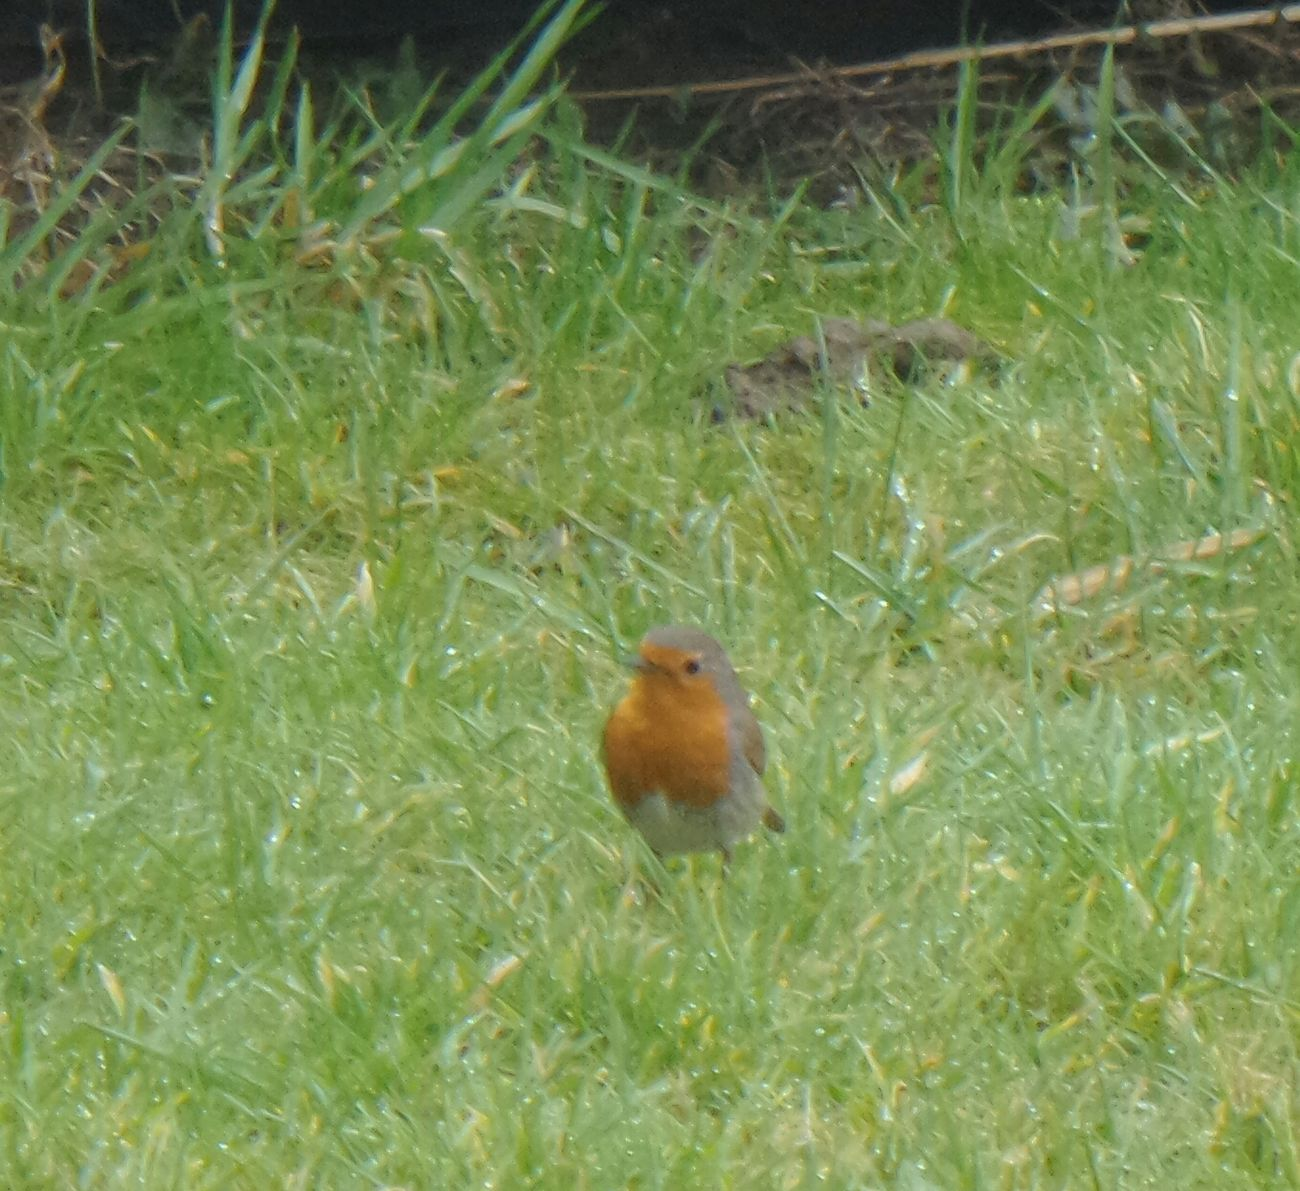 Roodborstje Robin Animal Themes Grass One Animal Nature Field Growth Green Color Mammal No People Outdoors Animals In The Wild Day Nature Photography Kzoom Red Focus On Foreground Bird